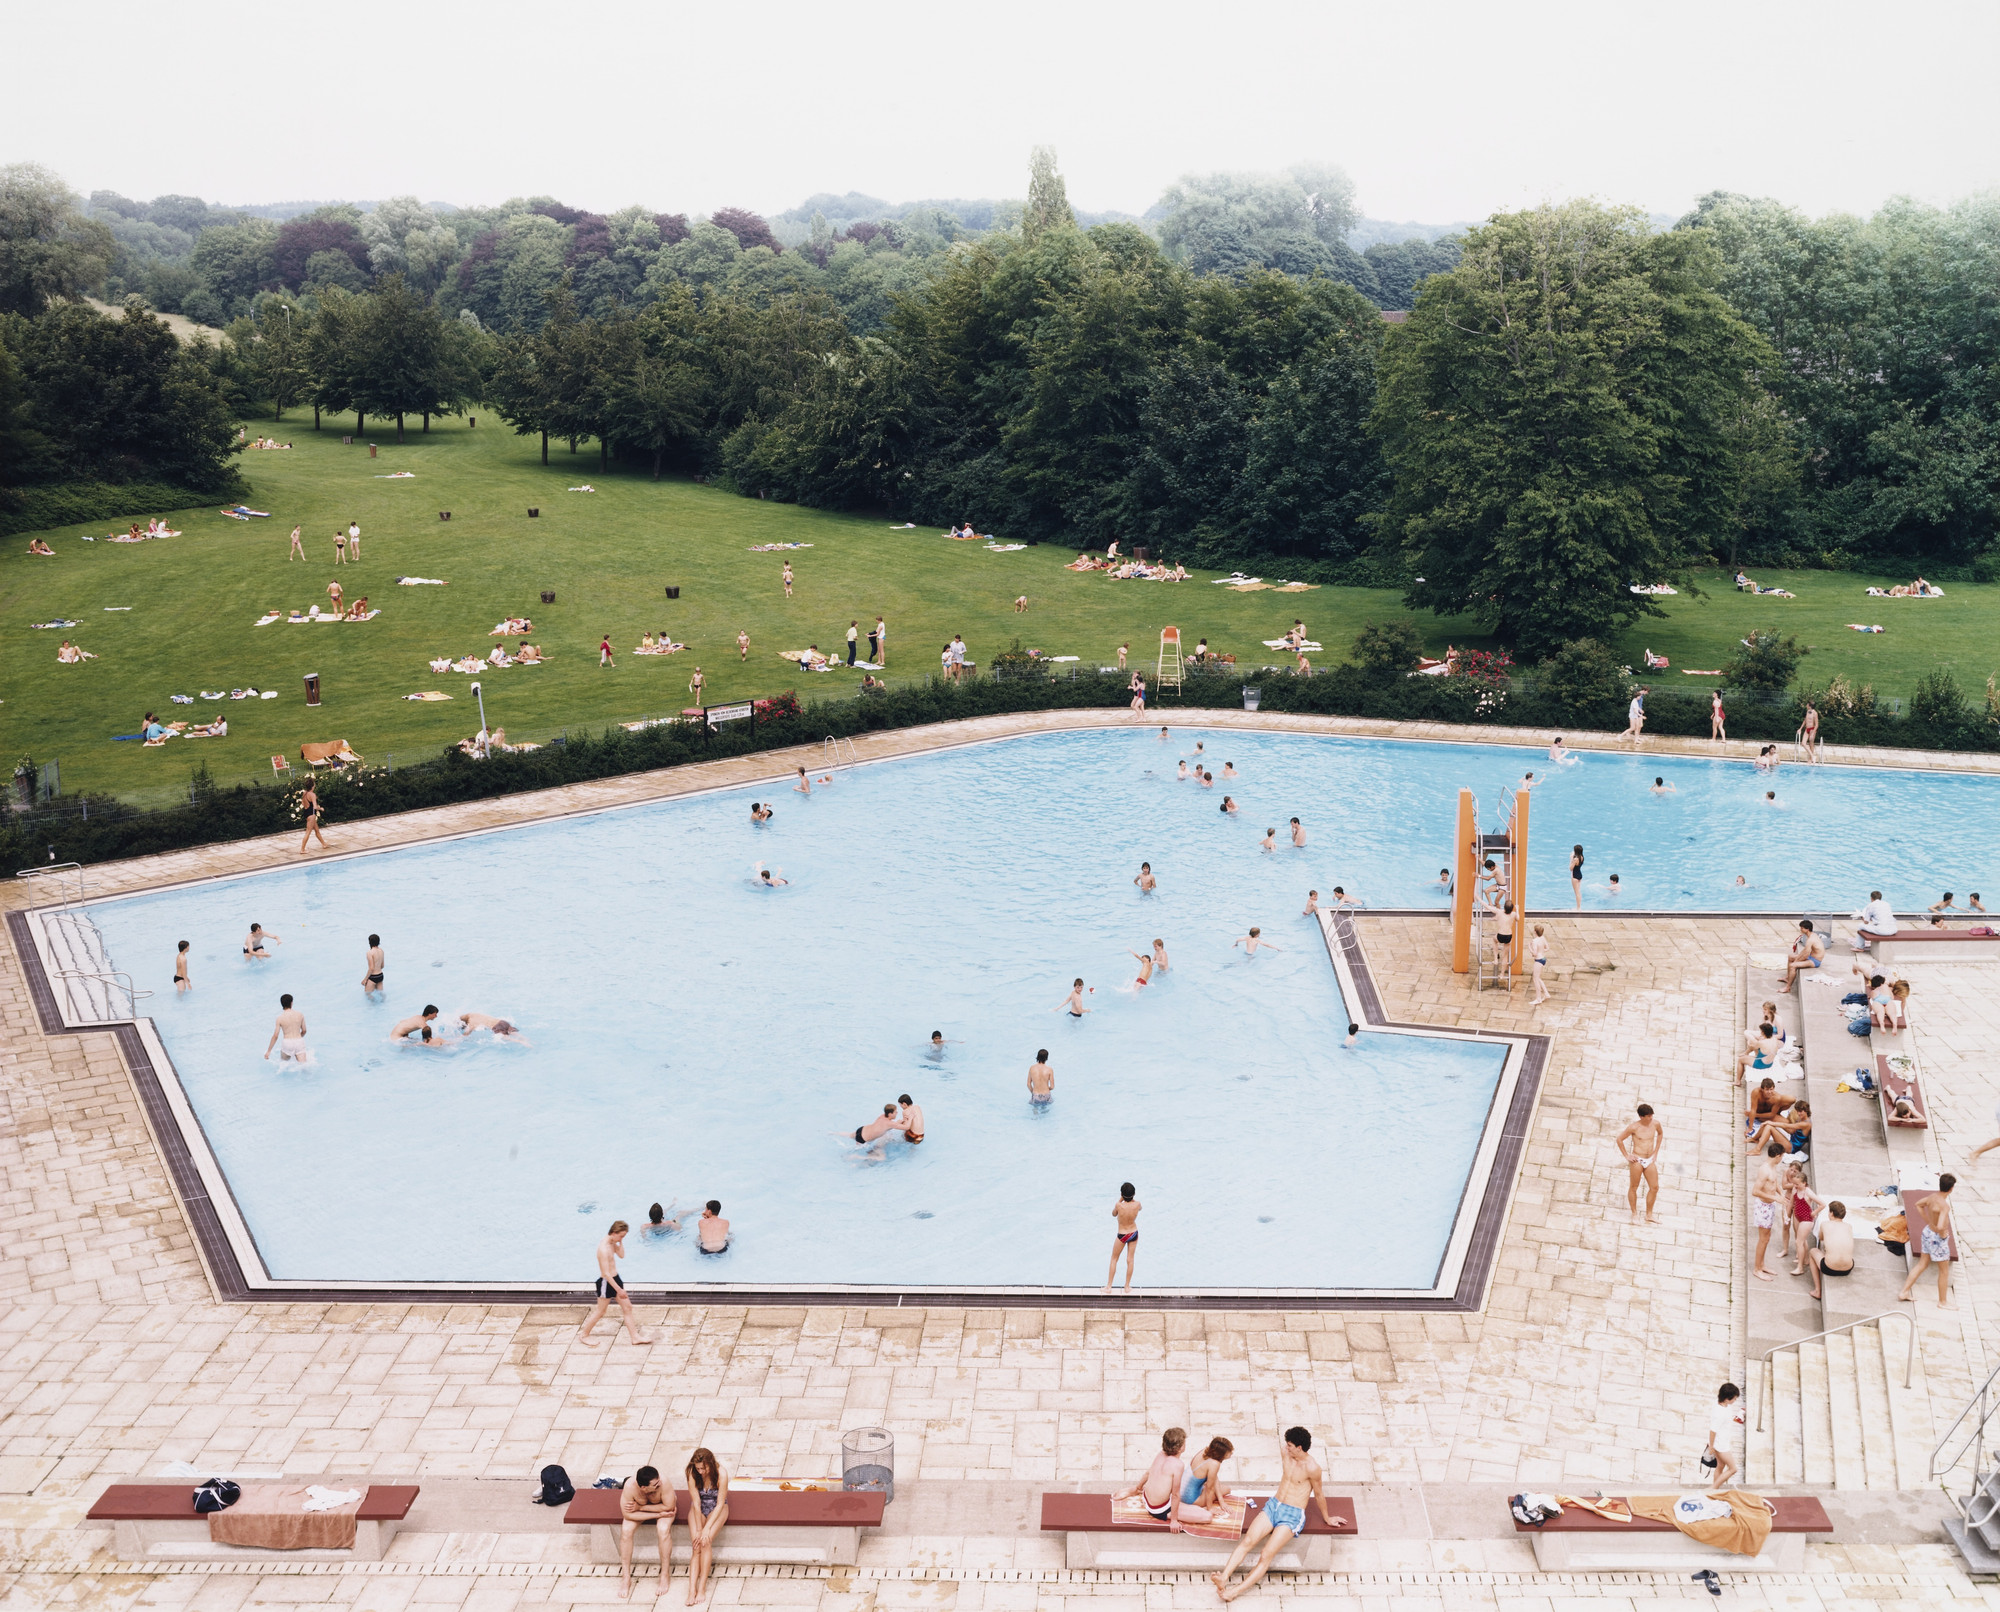 Andreas Gursky. Ratingen Swimming Pool. 1987